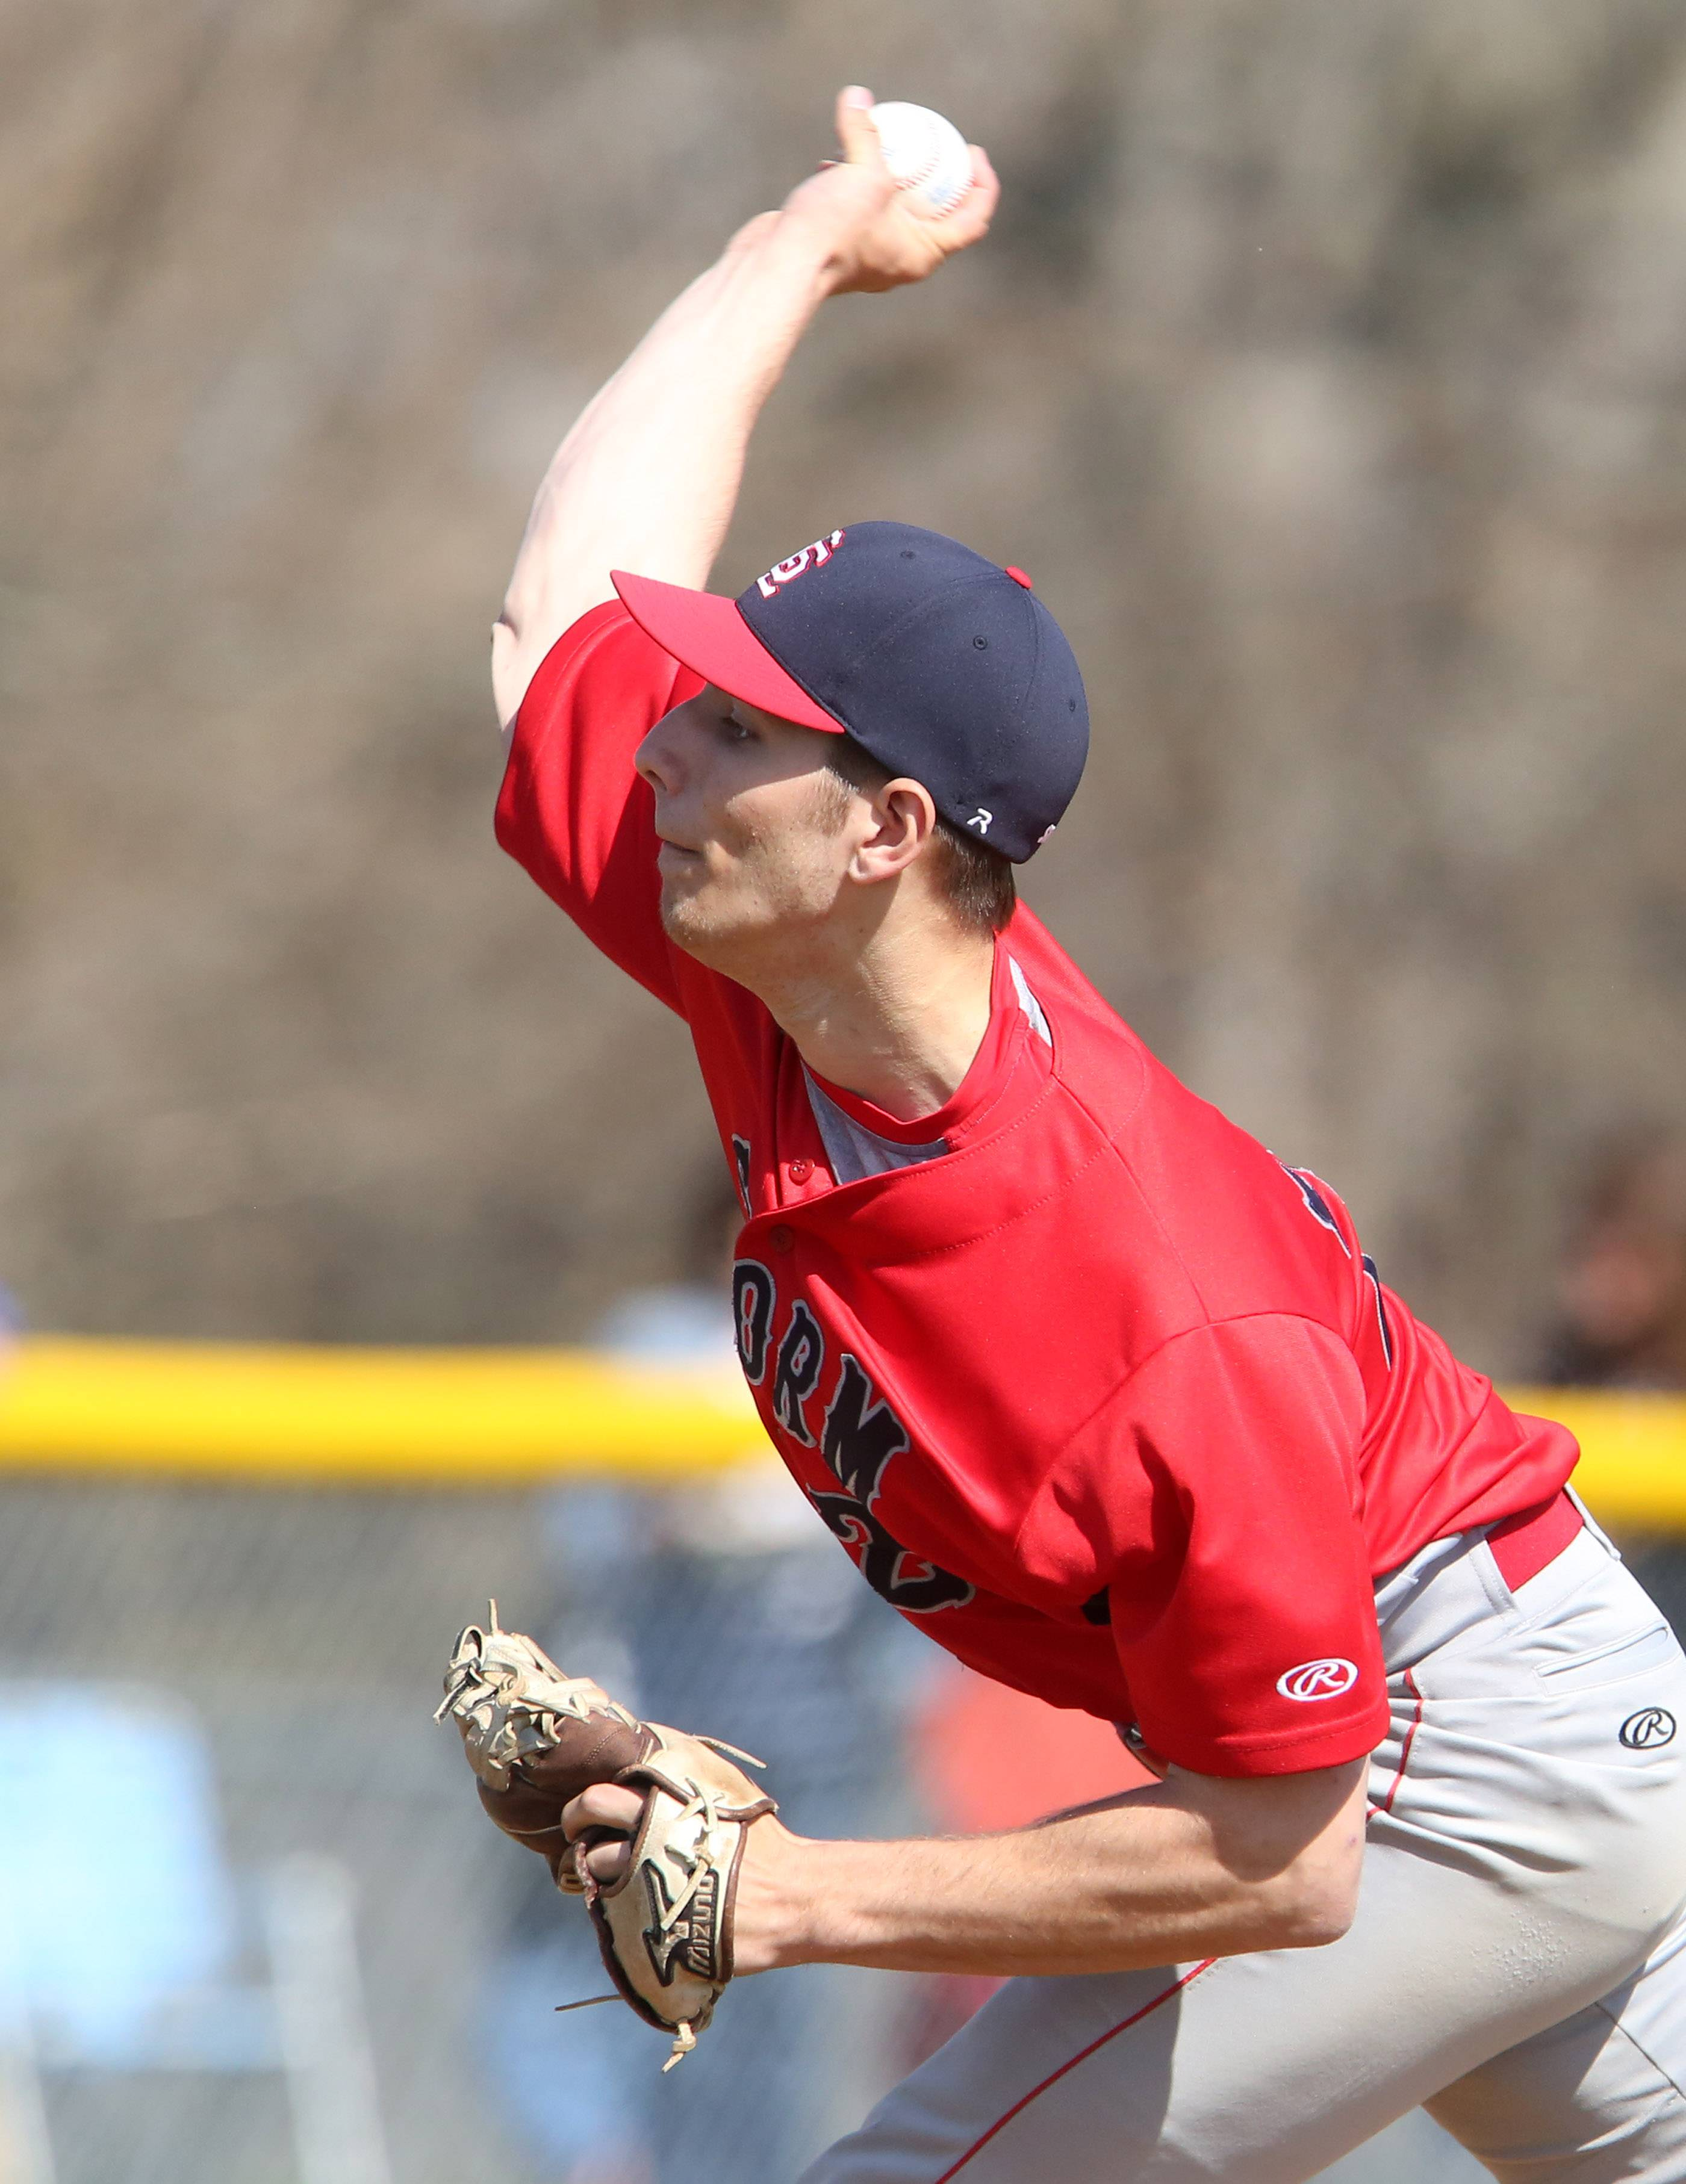 South Elgin's pitcher Ryan Weiss facing Bartlett on Saturday at South Elgin.